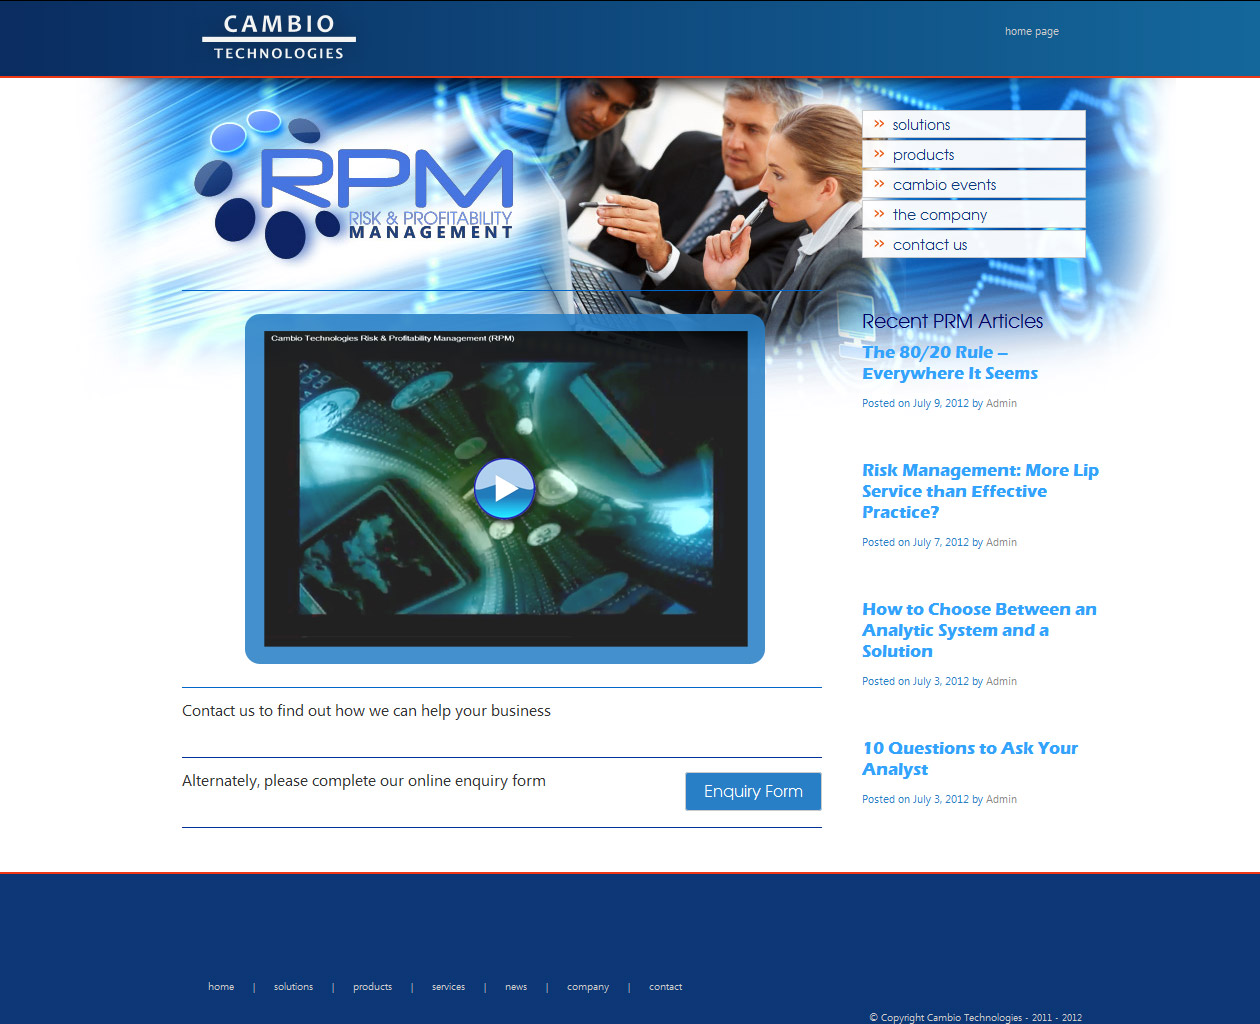 Cambiotechnologies_1